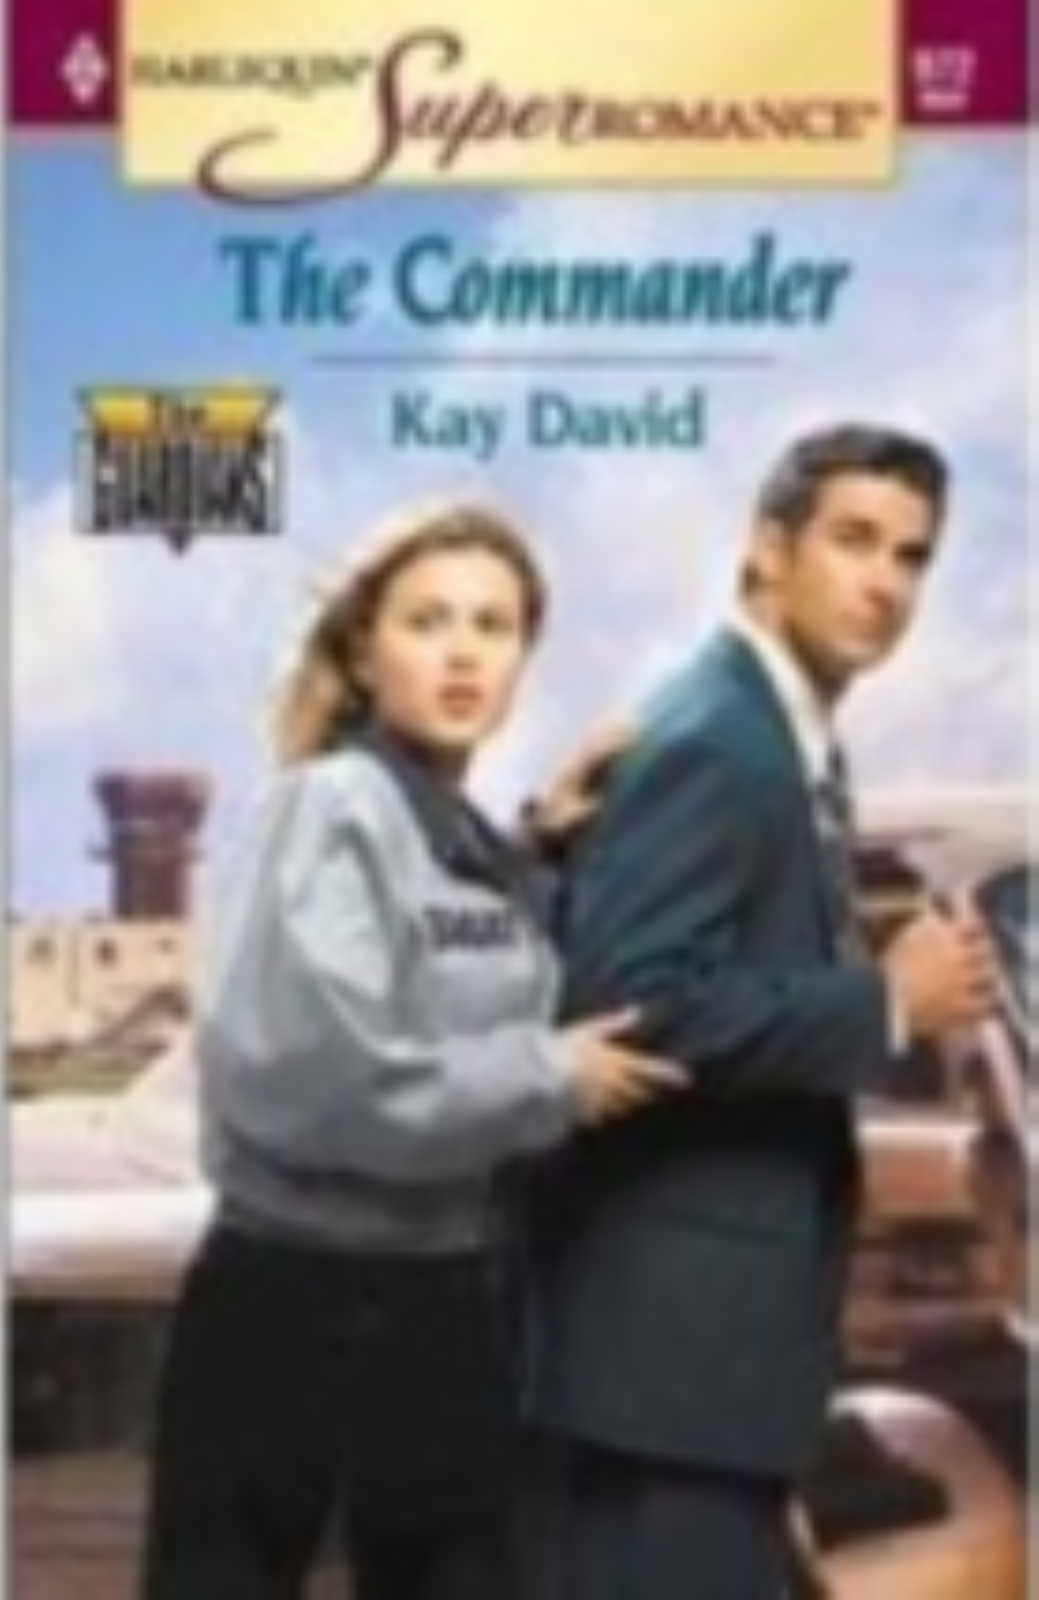 The Commander - Harlequin Super Romance by  Kay David